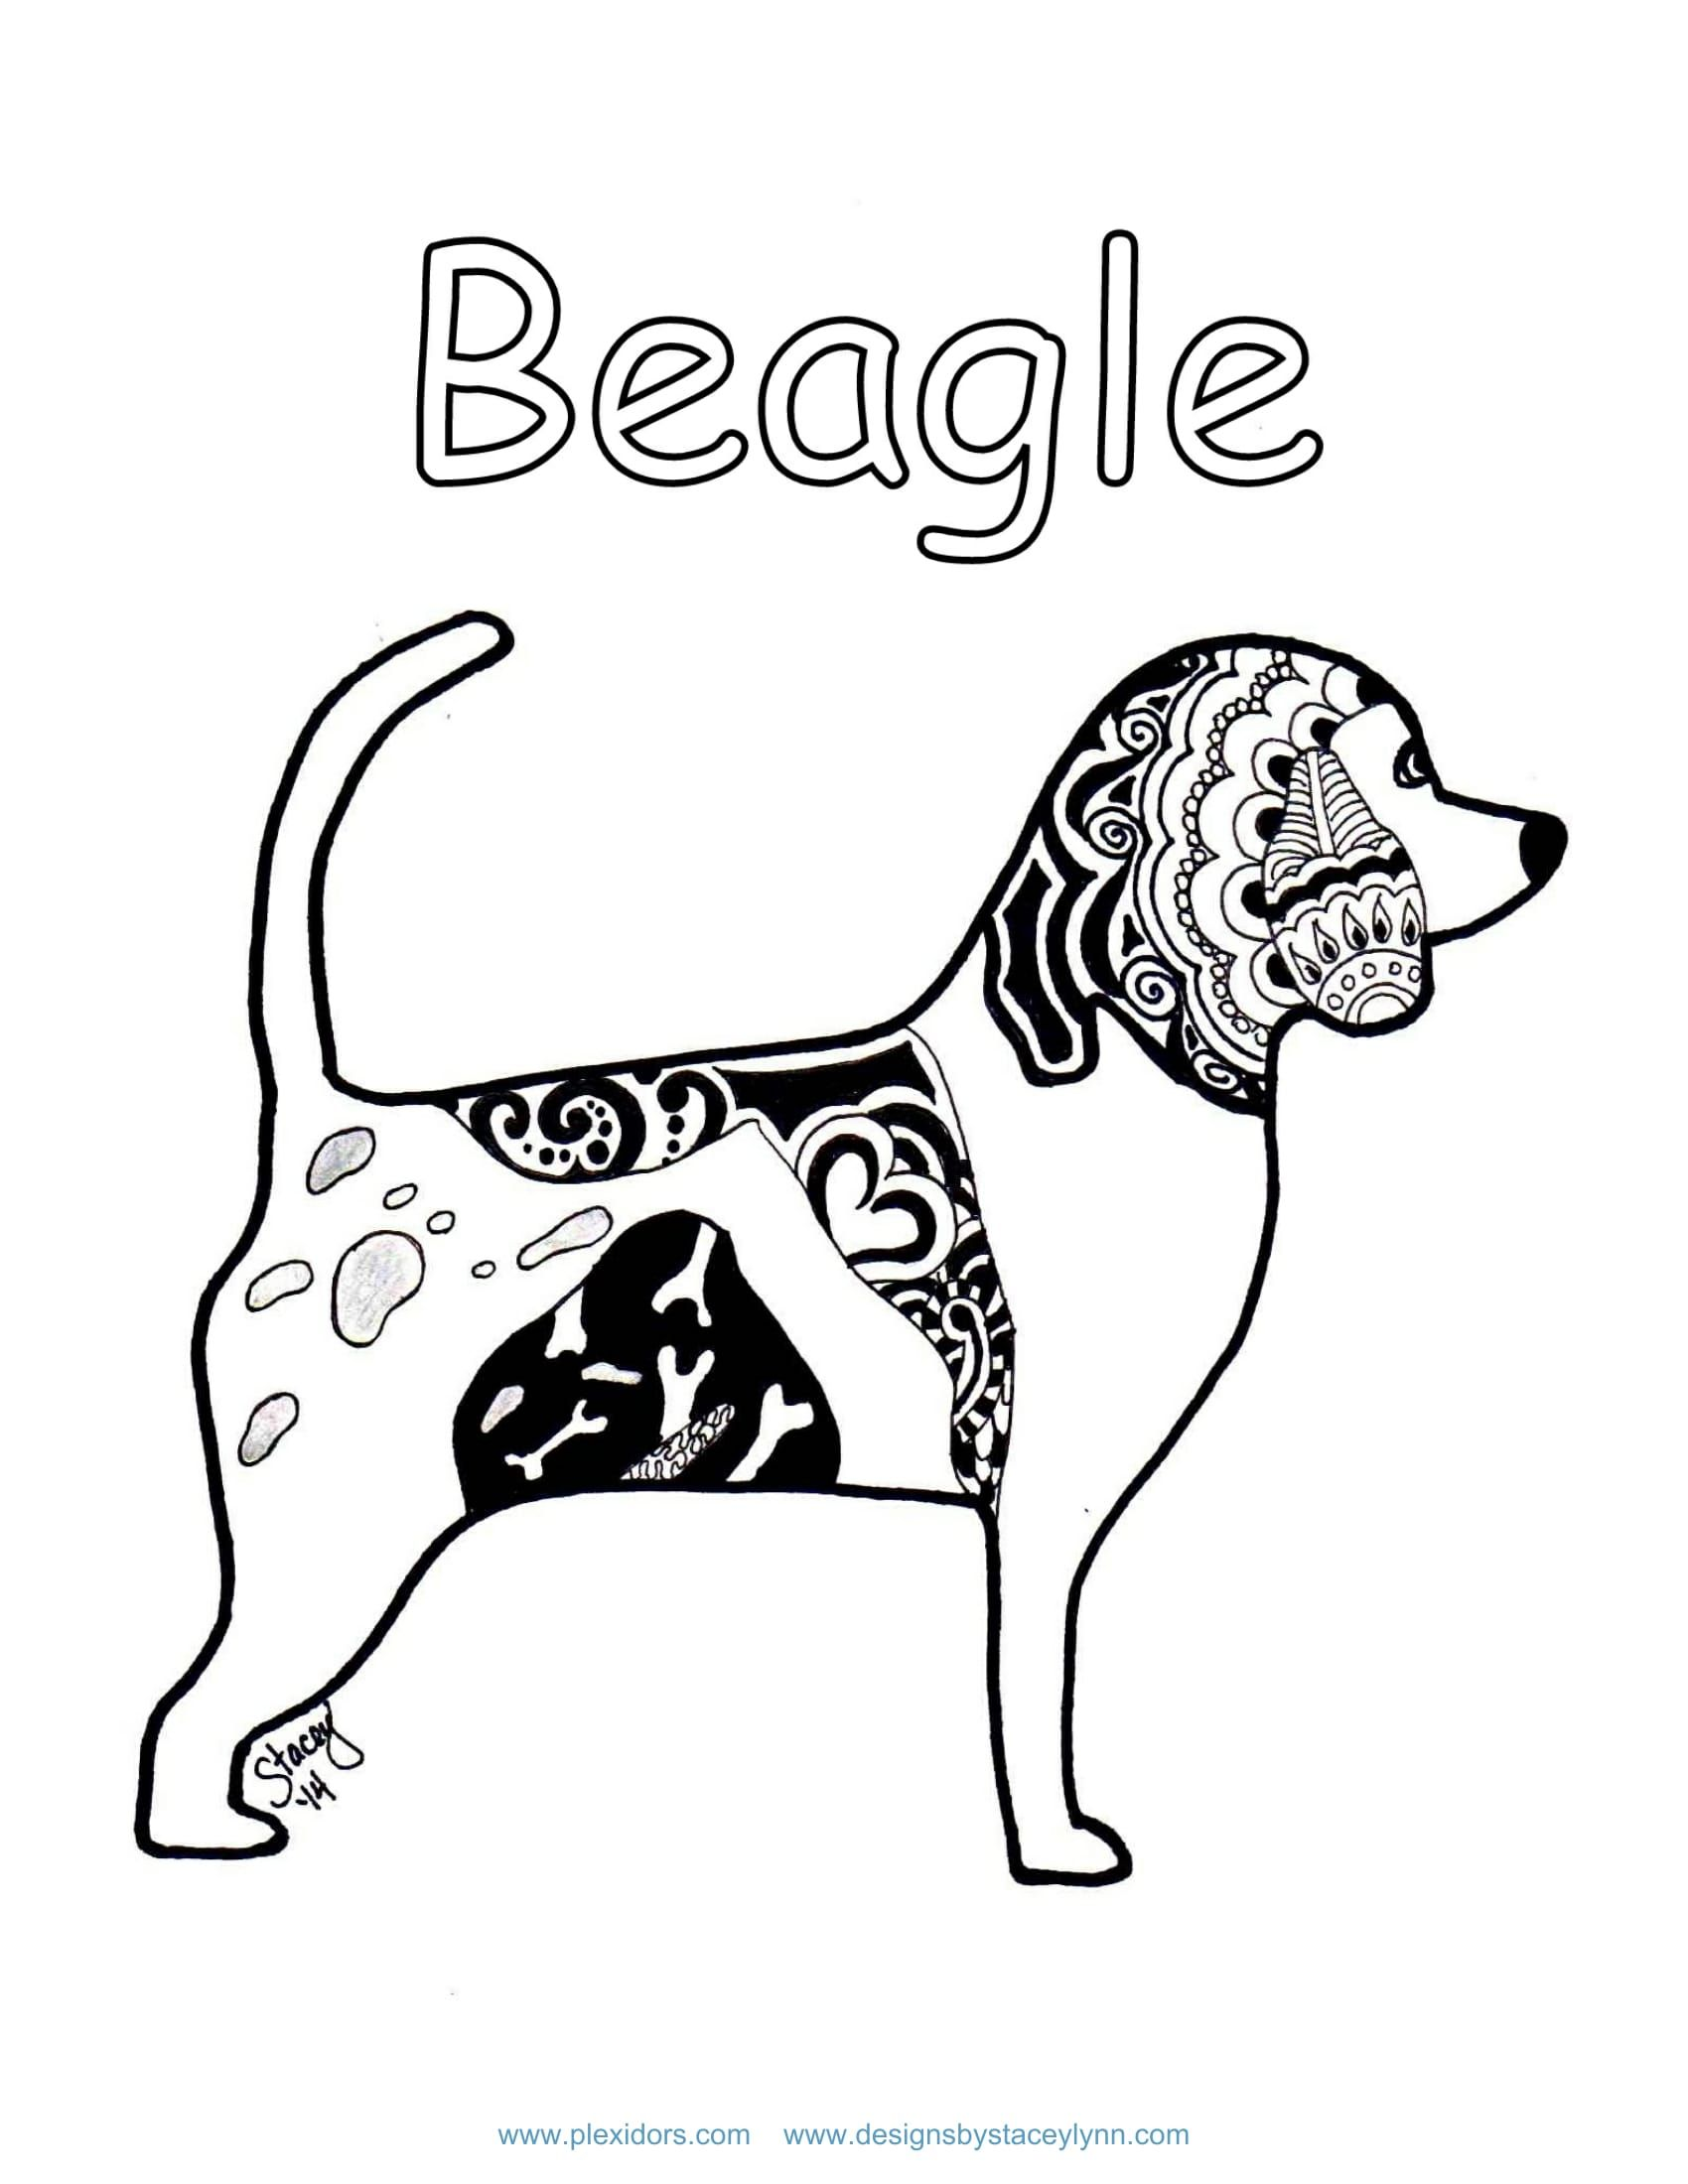 Beagle Coloring Page Plexidor Activity Book Pg 2 Pet Doors